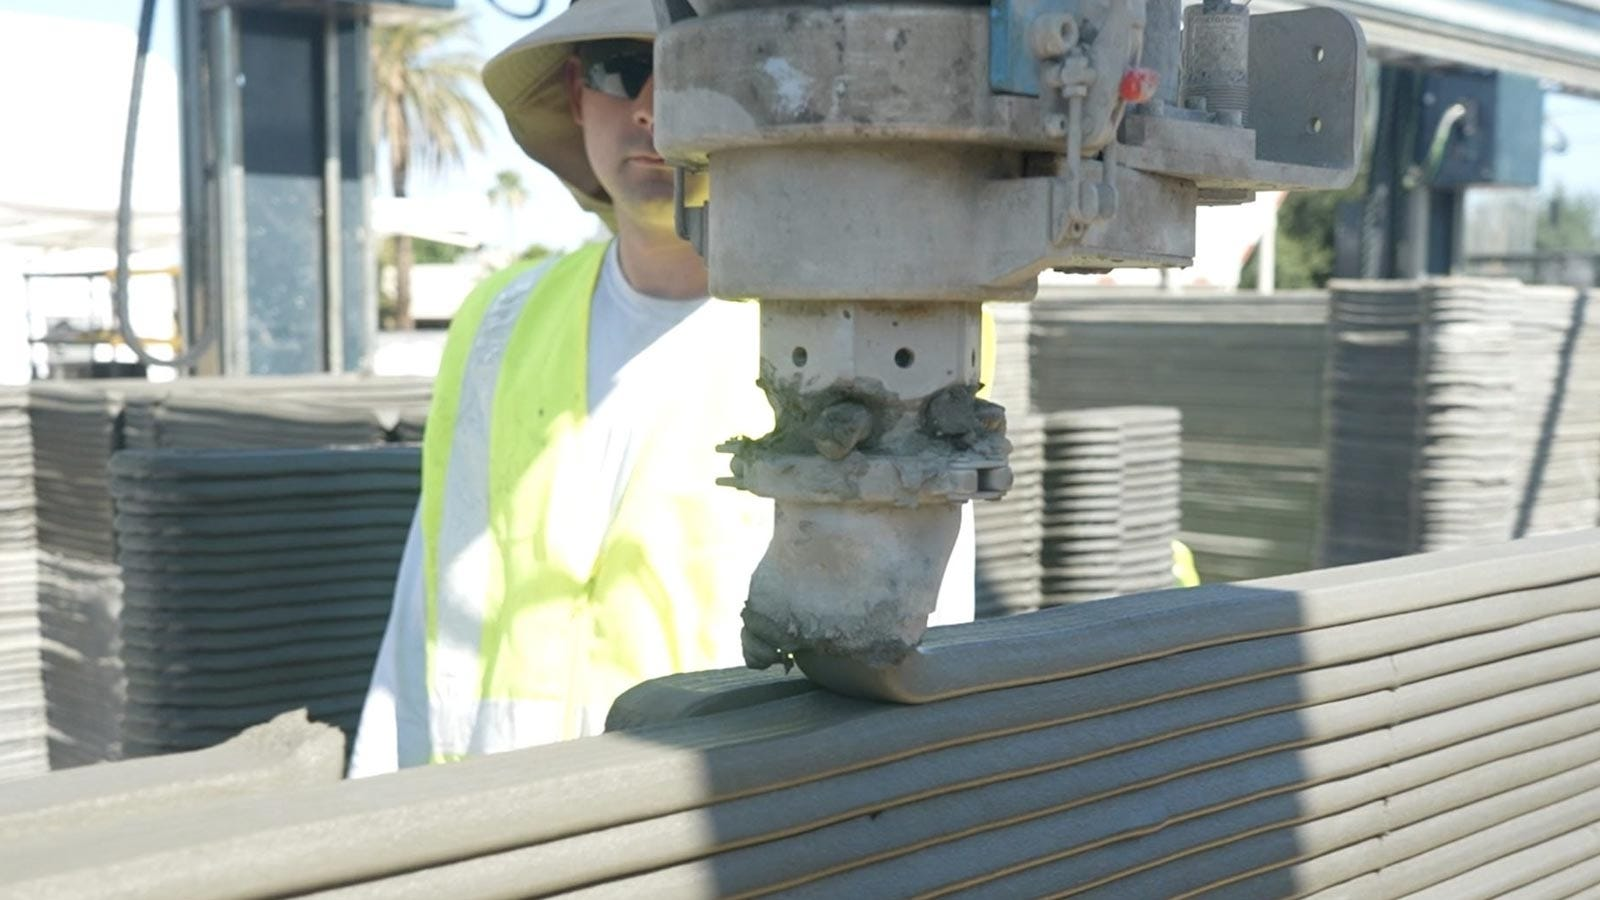 A construction worker watches a concrete 3D printer lay down a wide band of concrete.